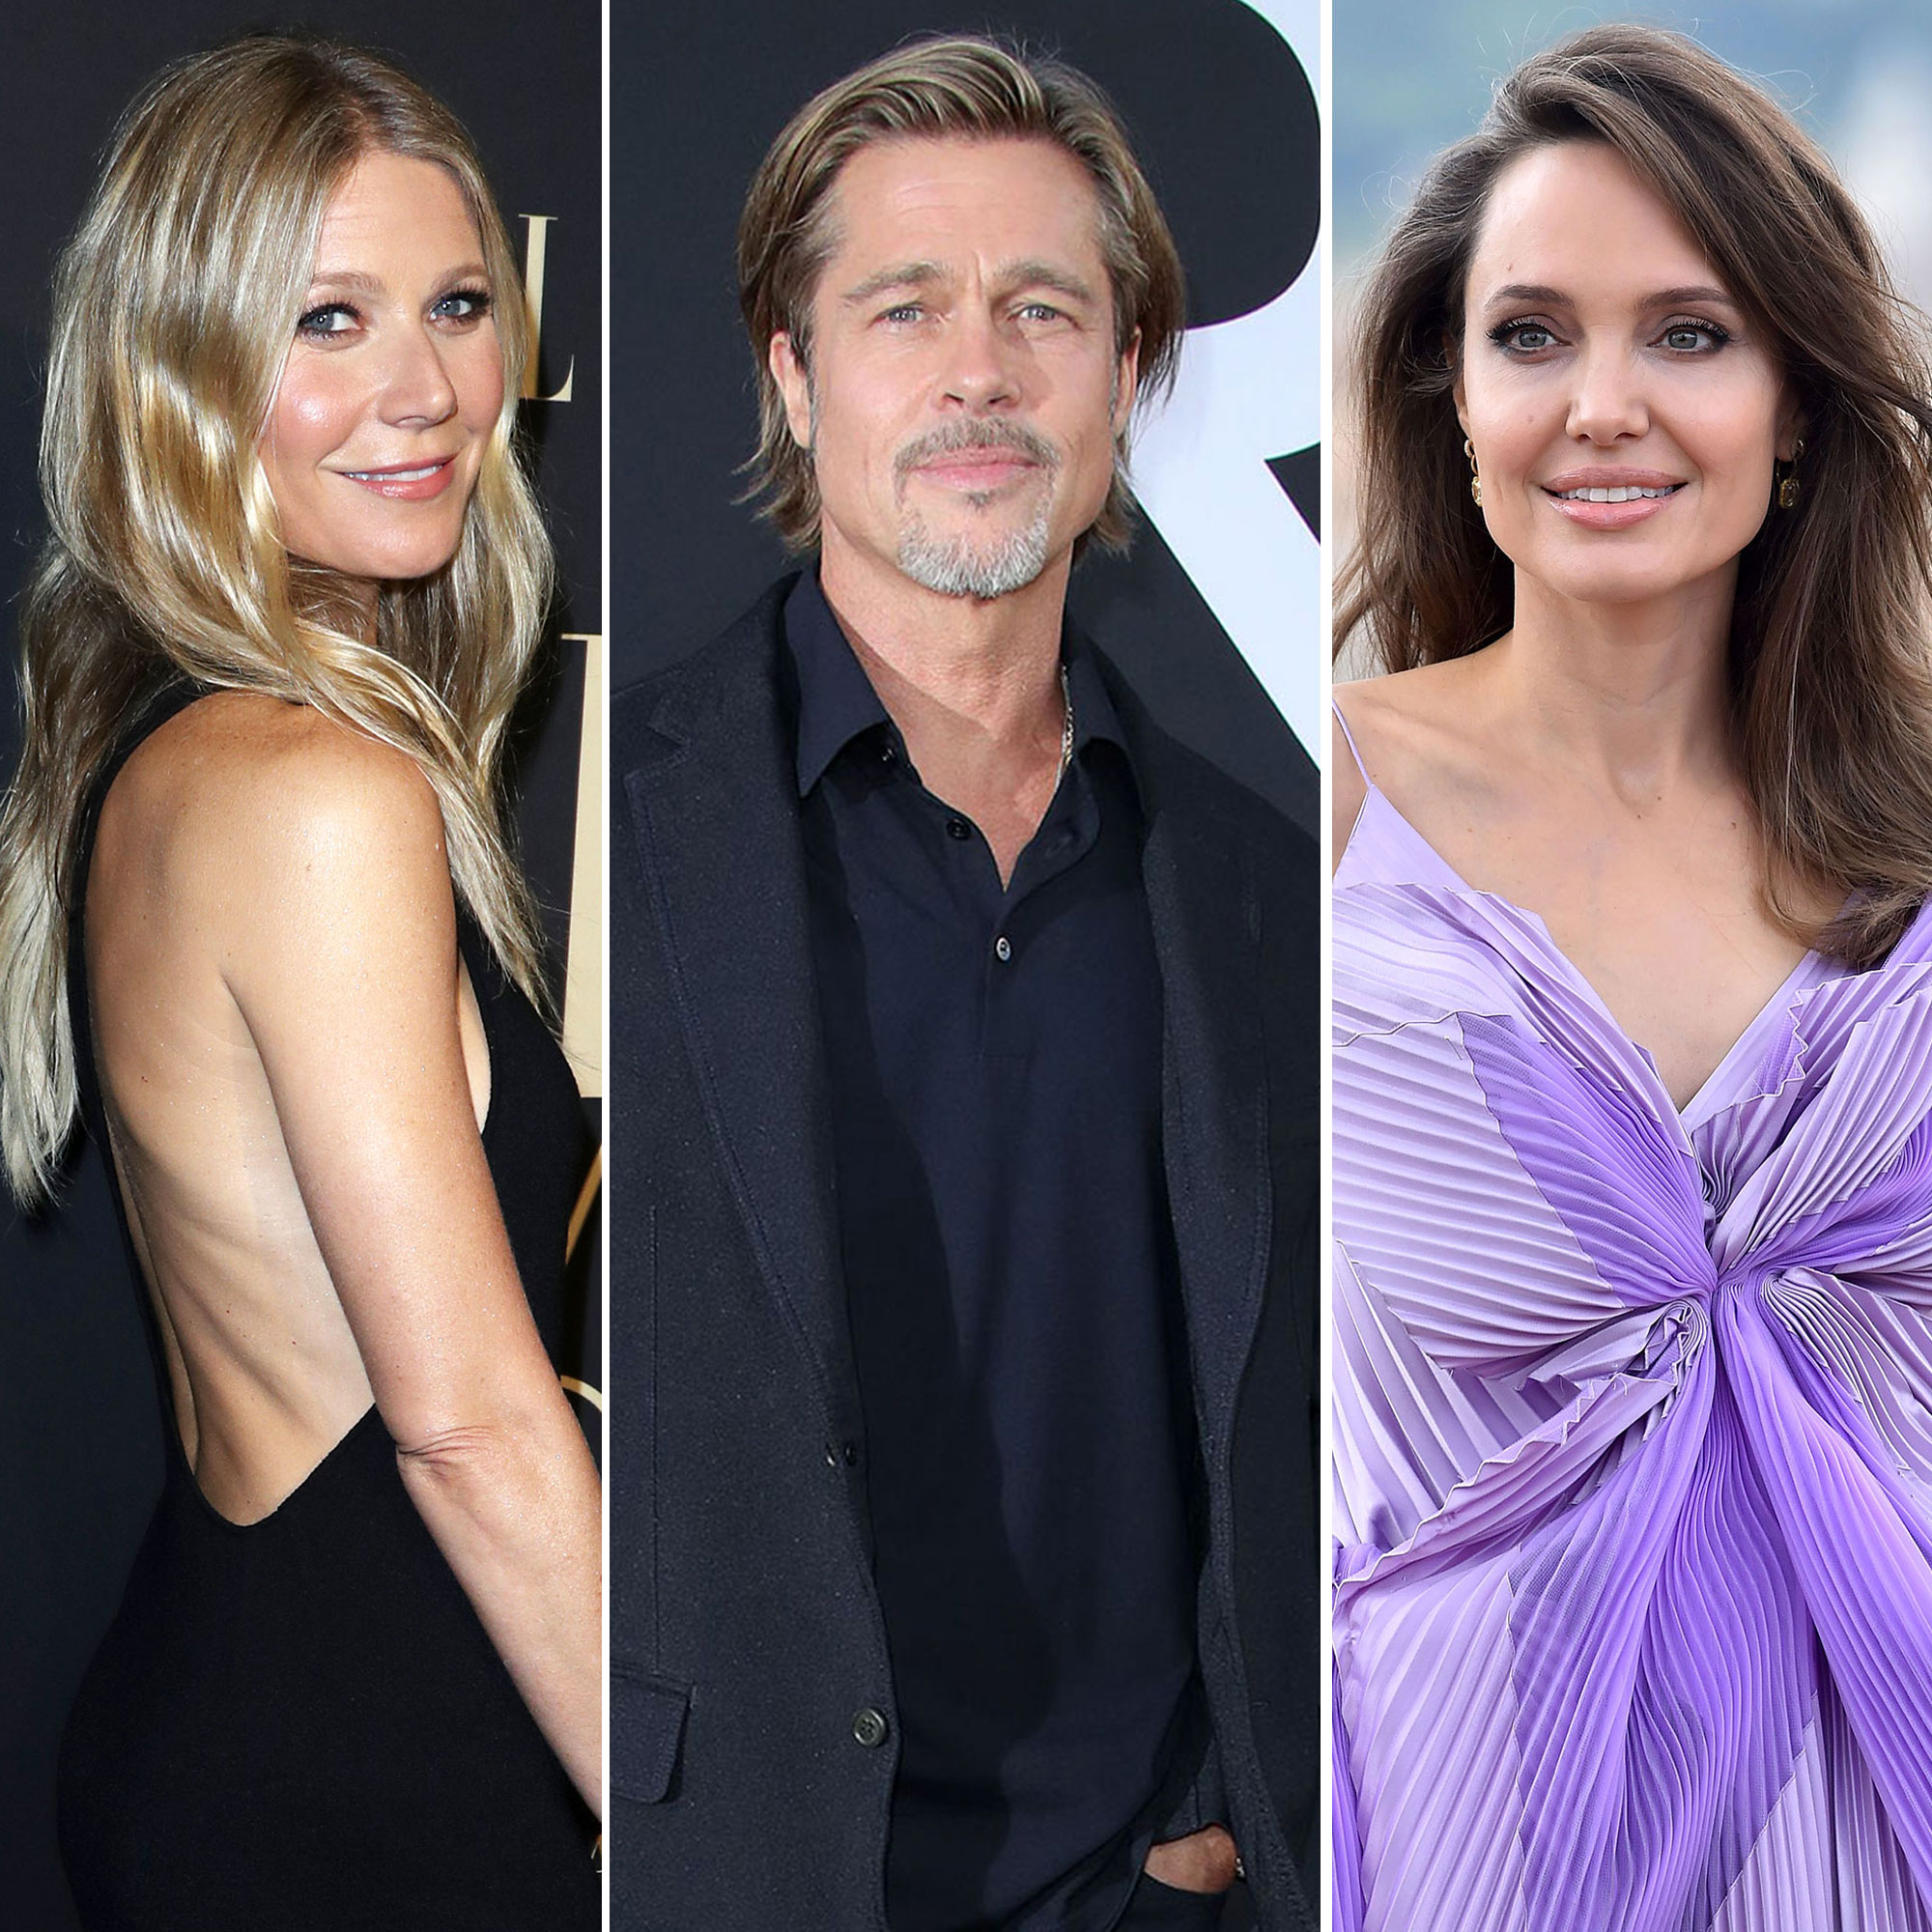 Brad Pitt dating Gwyneth Paltrow